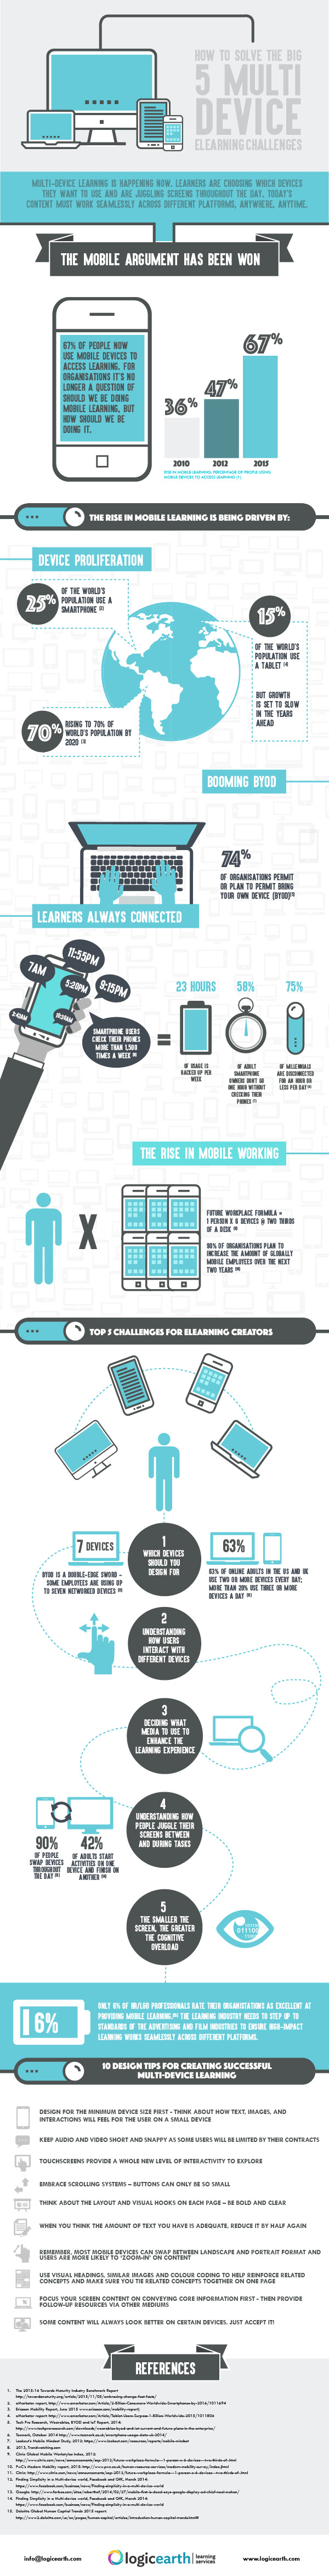 5-multi-device-challenges-2016